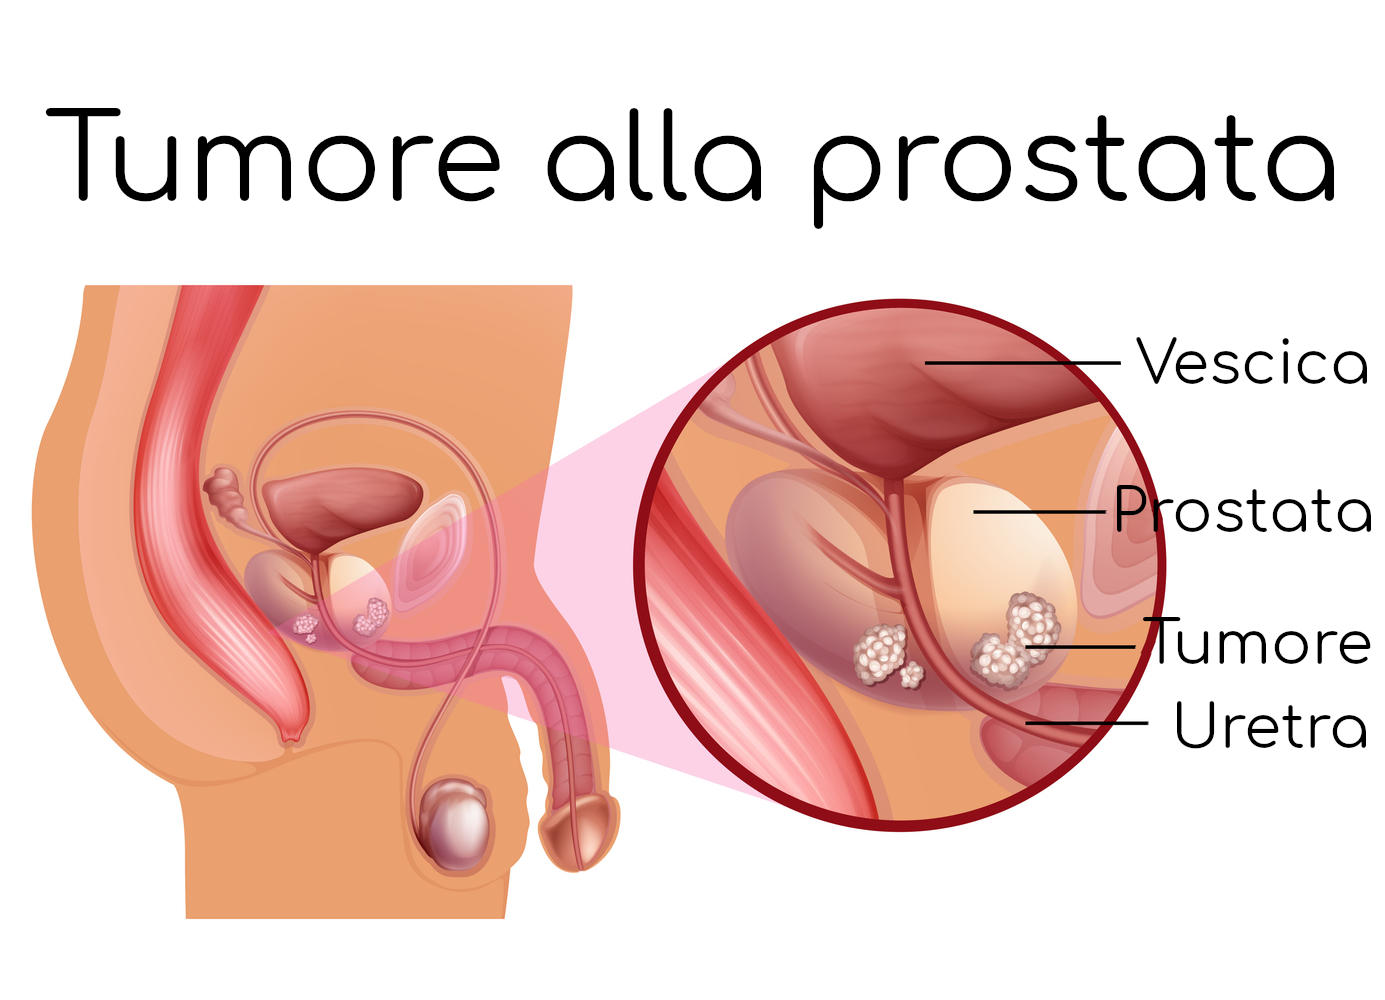 www.coma diagnosticare tumore alla prostata.it